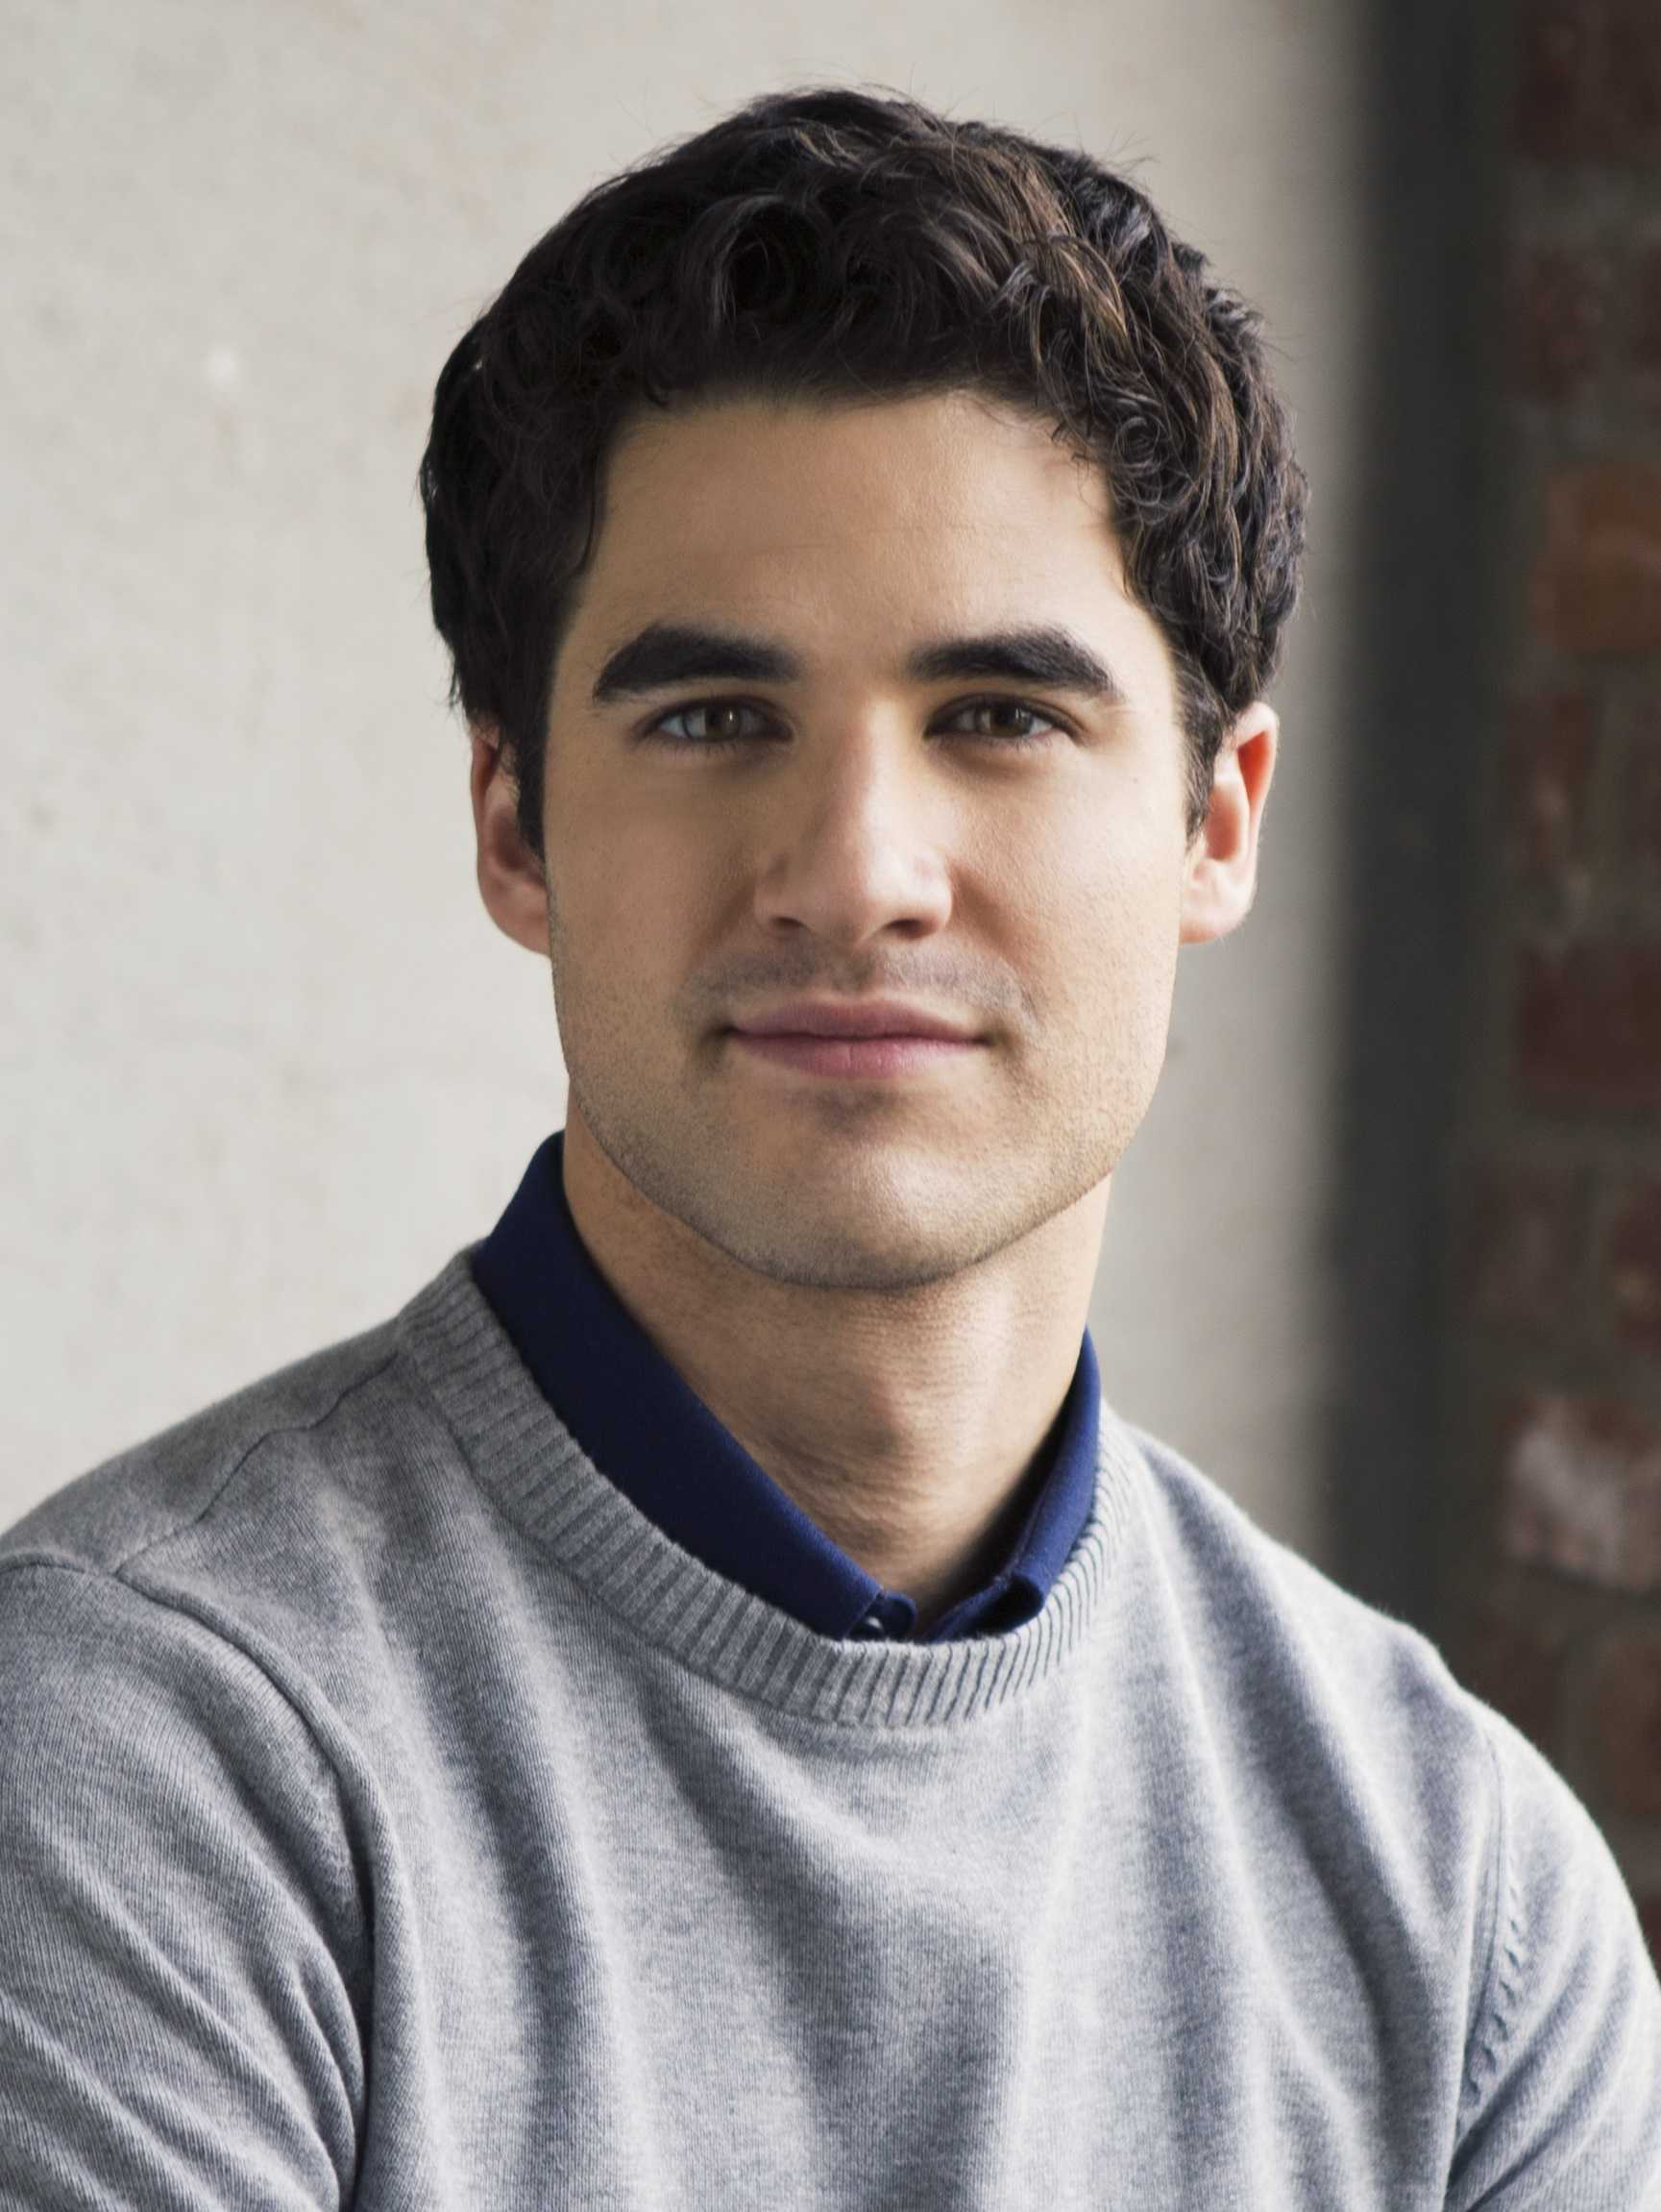 This Time: Darren Criss Discusses Writing Process For Glee Series Finale | Darren Criss